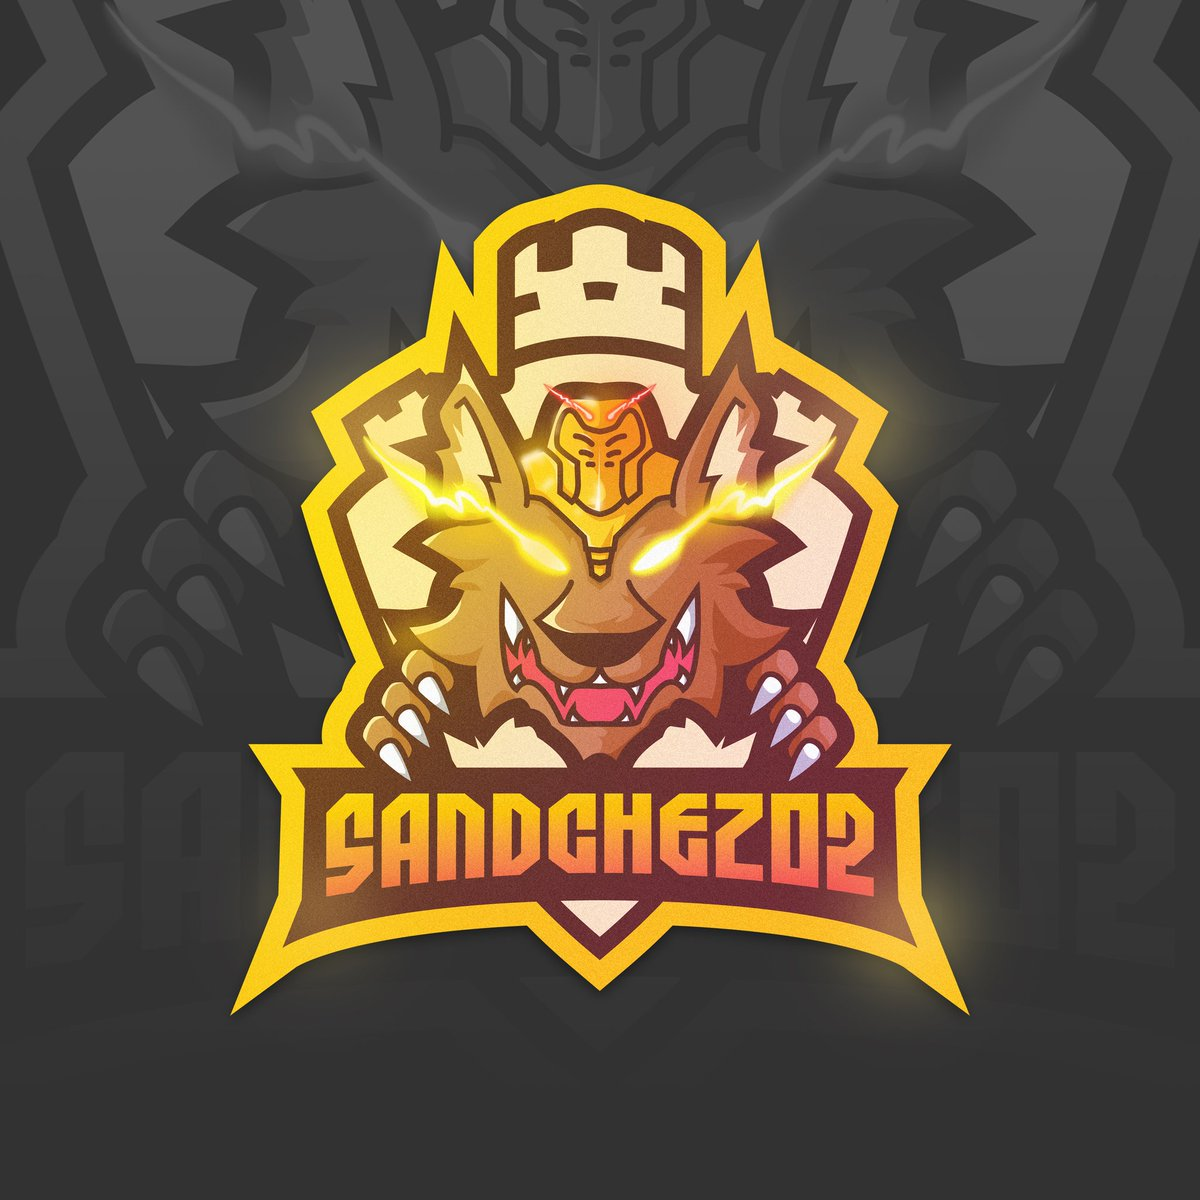 Commission for sandghez02. Go check his twitch stream.✨  #twitch #twitchlogo #twitchstreamer #twitchemotes #twitchemoteartist #discord #mixer #commissionsopen #fiverr #streamer #opencommission #commissions #twitchaffiliate https://t.co/81LMz3Ecbp